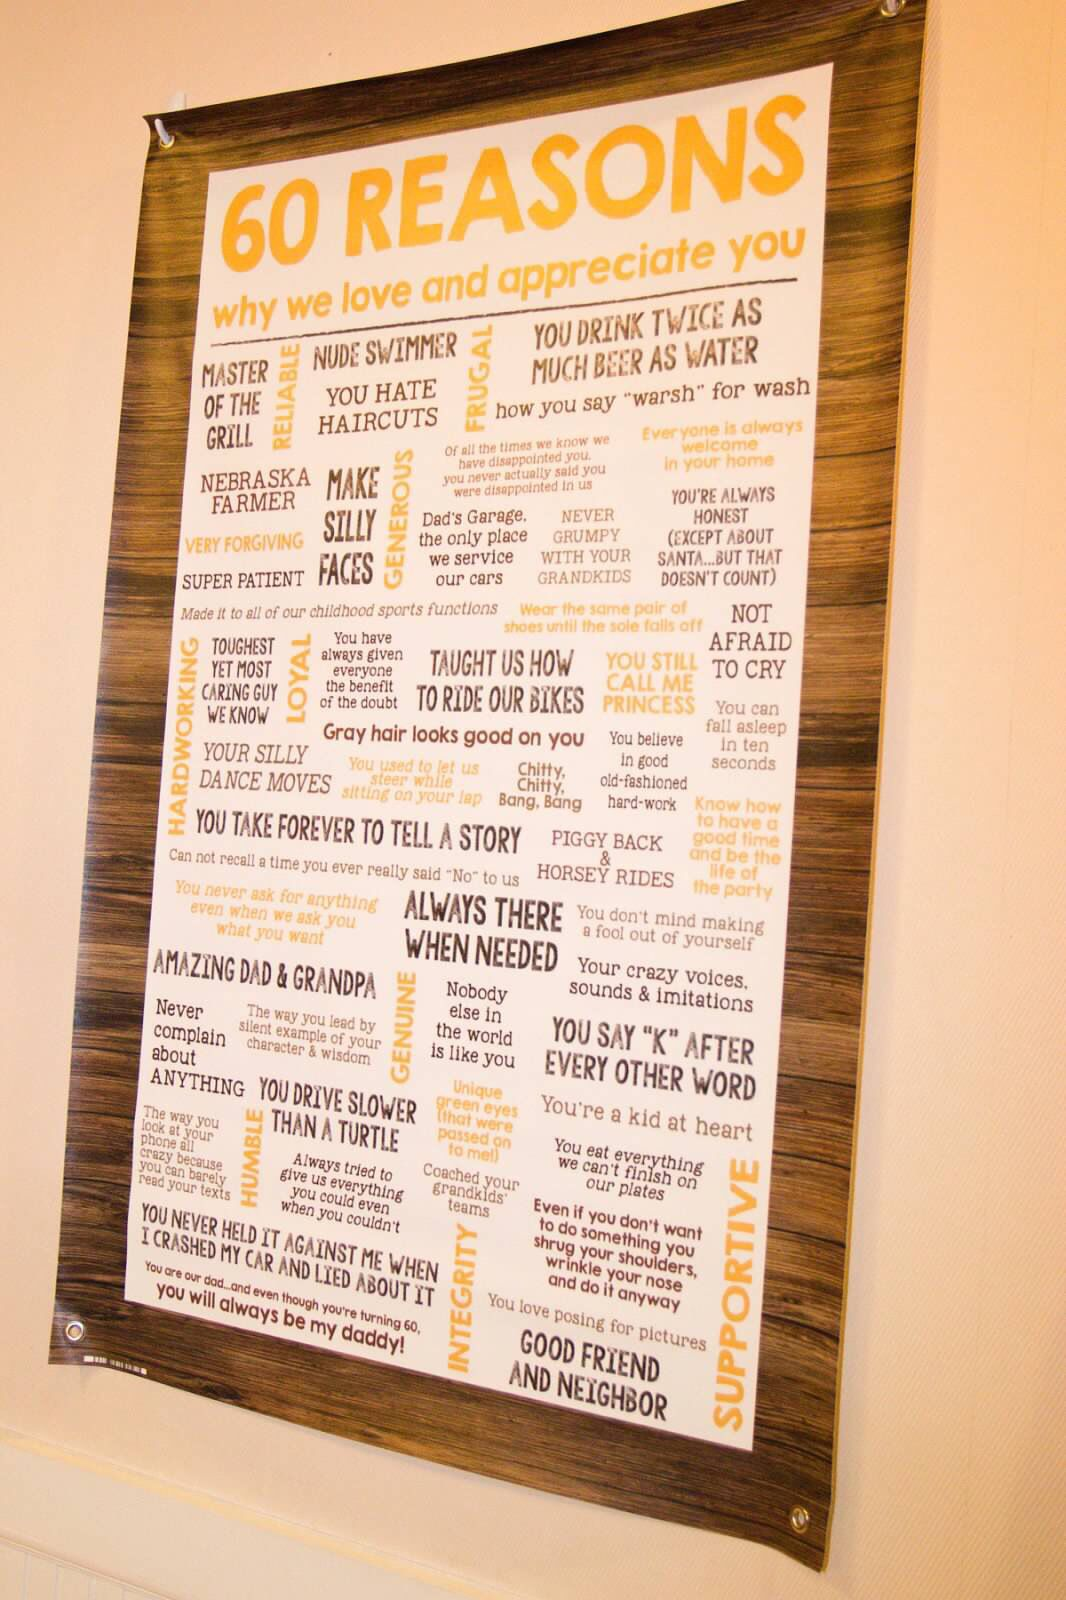 Rustic 60th Birthday Party 60 Reasons Why We Love You Banner Posh N Chic Prints Was The Event Planner